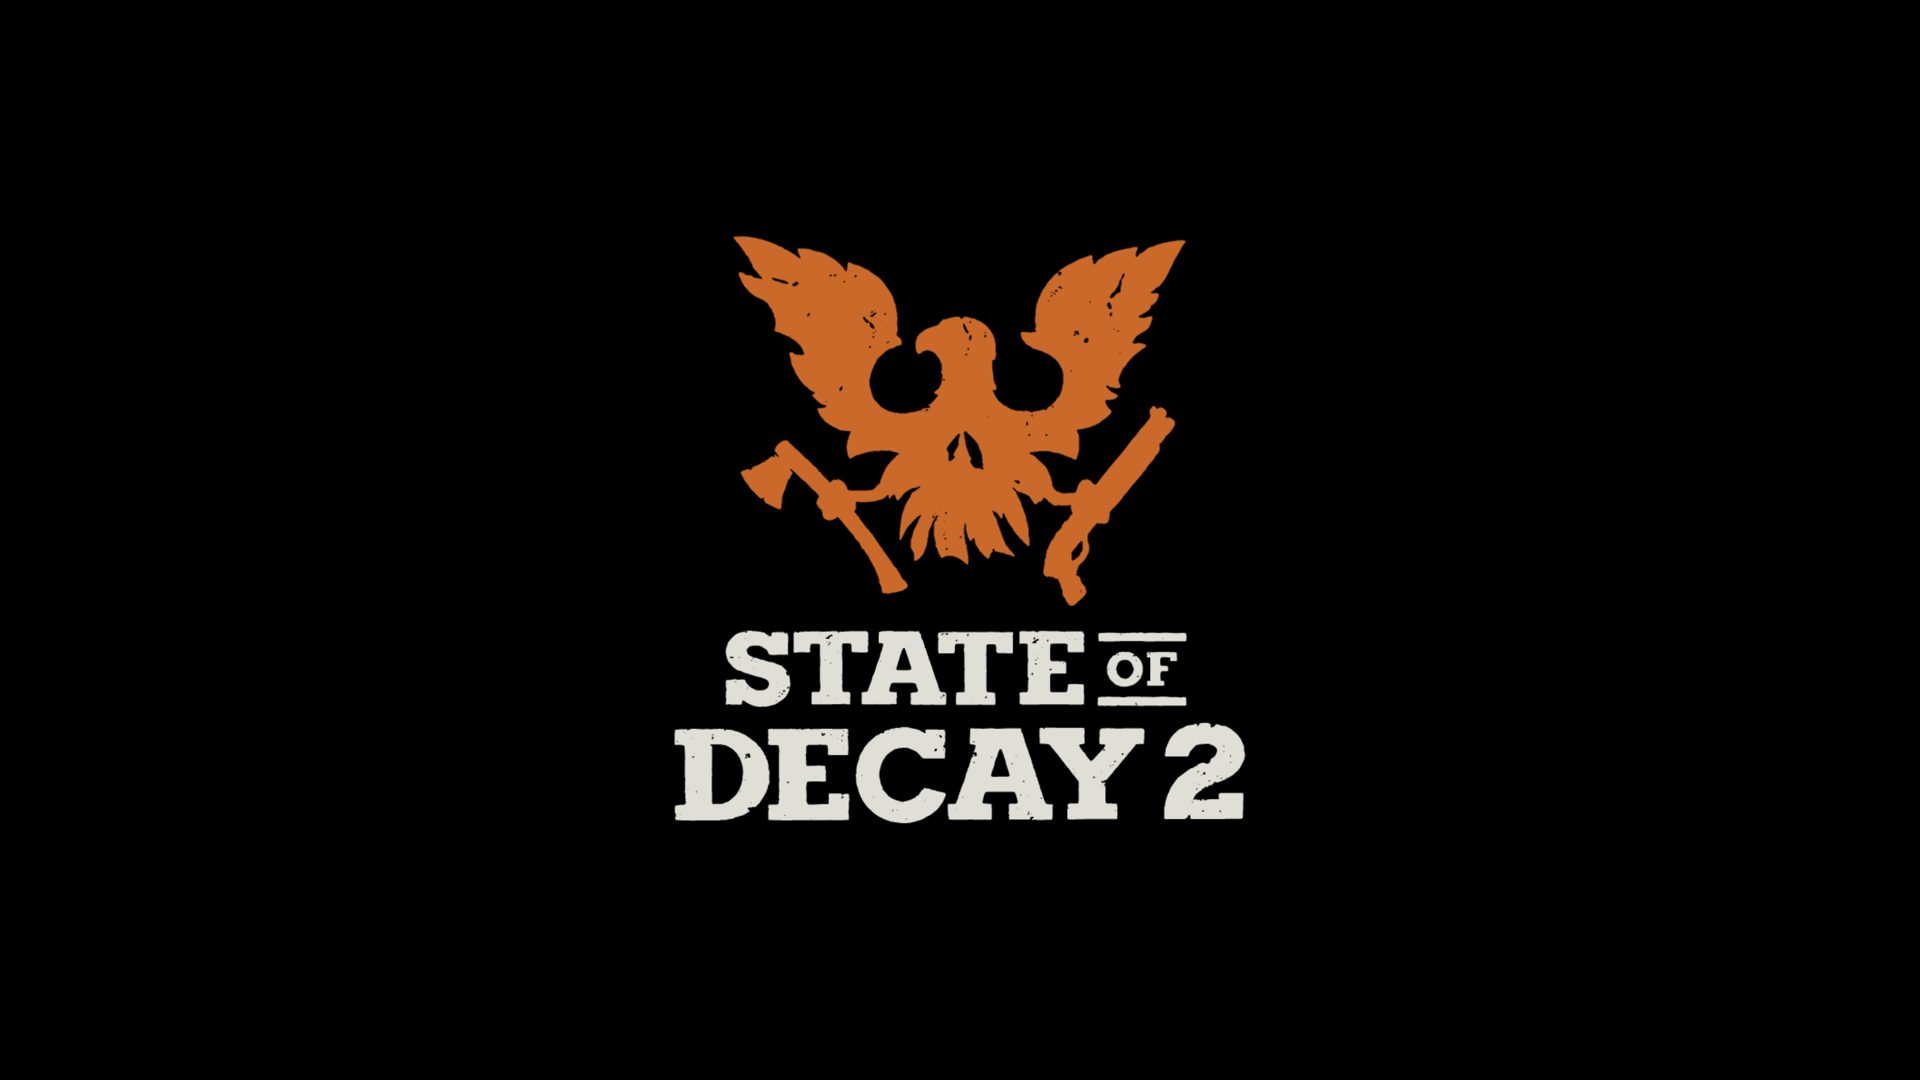 State of Decay 2 Has Crossed 1 Million Players